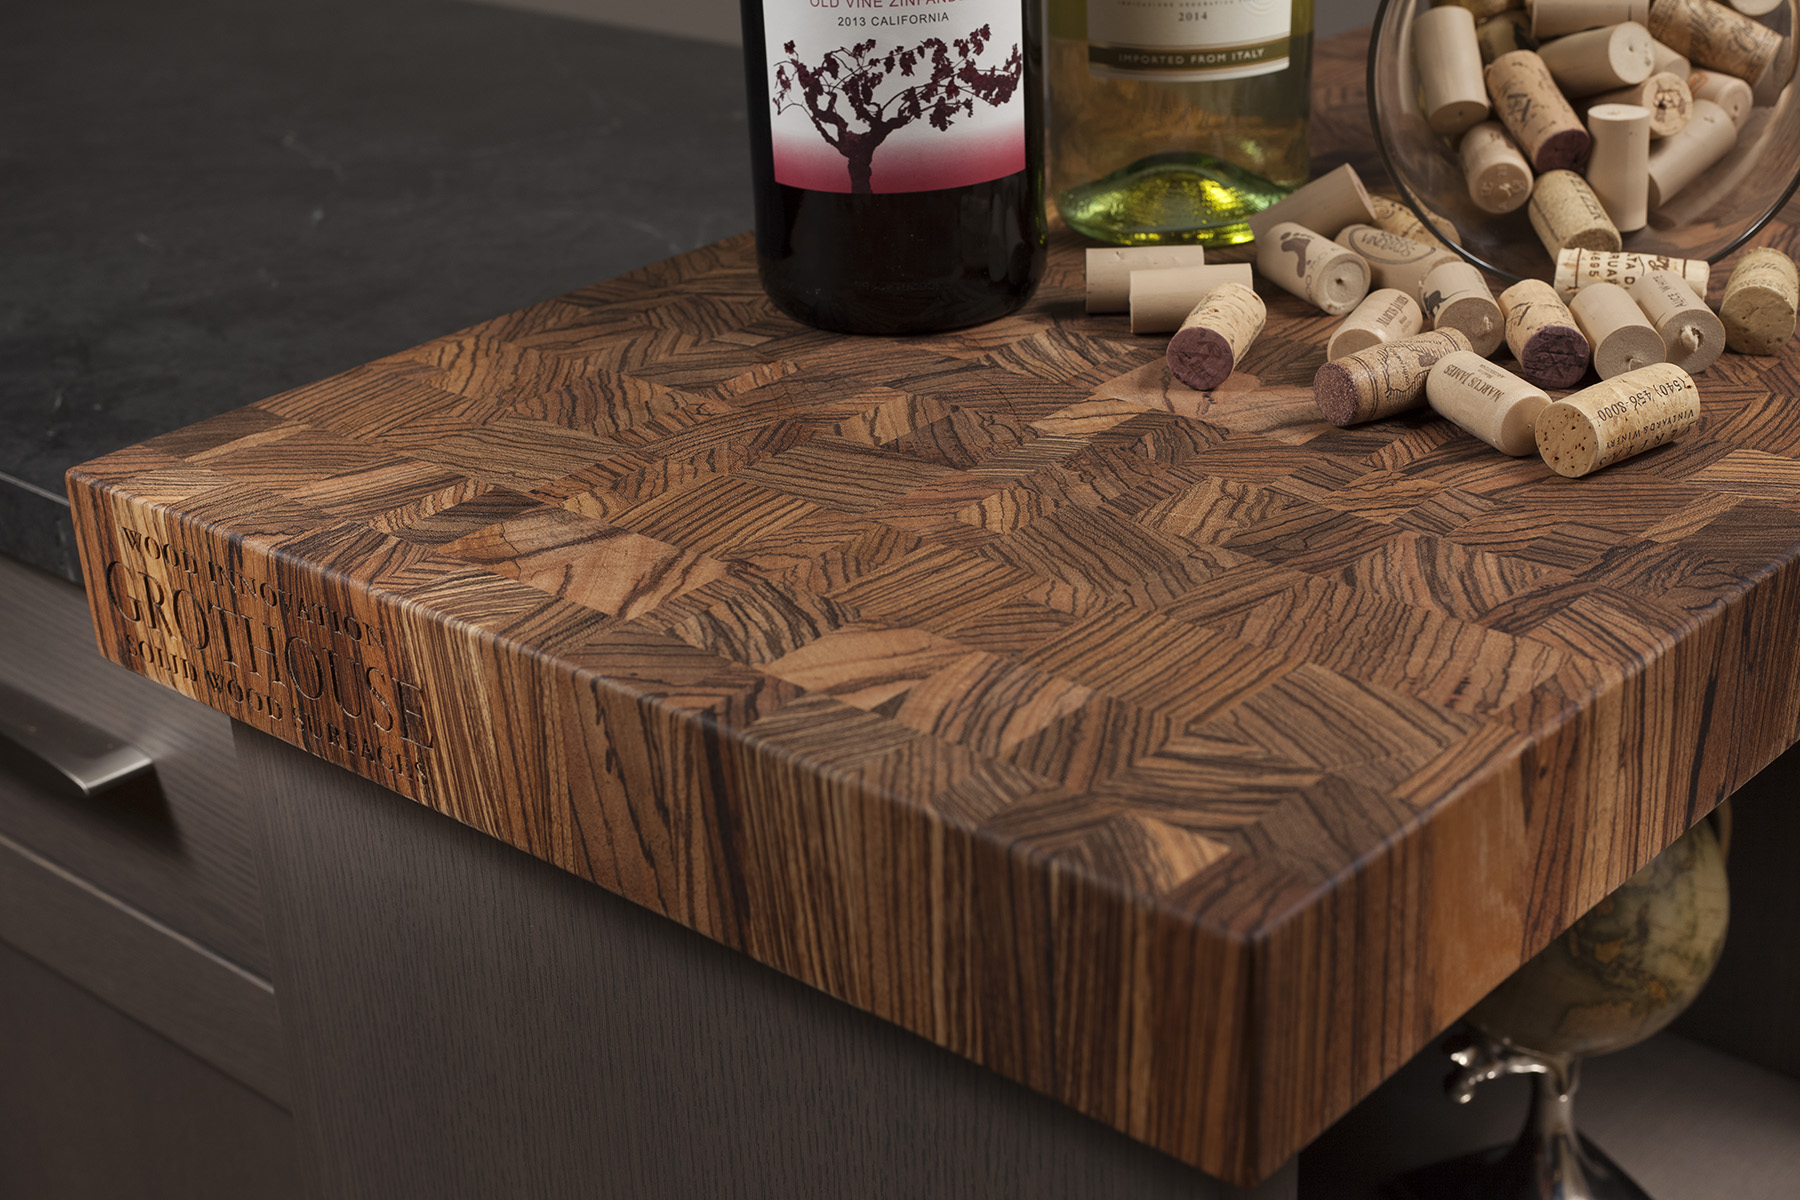 Custom Butcher Block Countertops on display